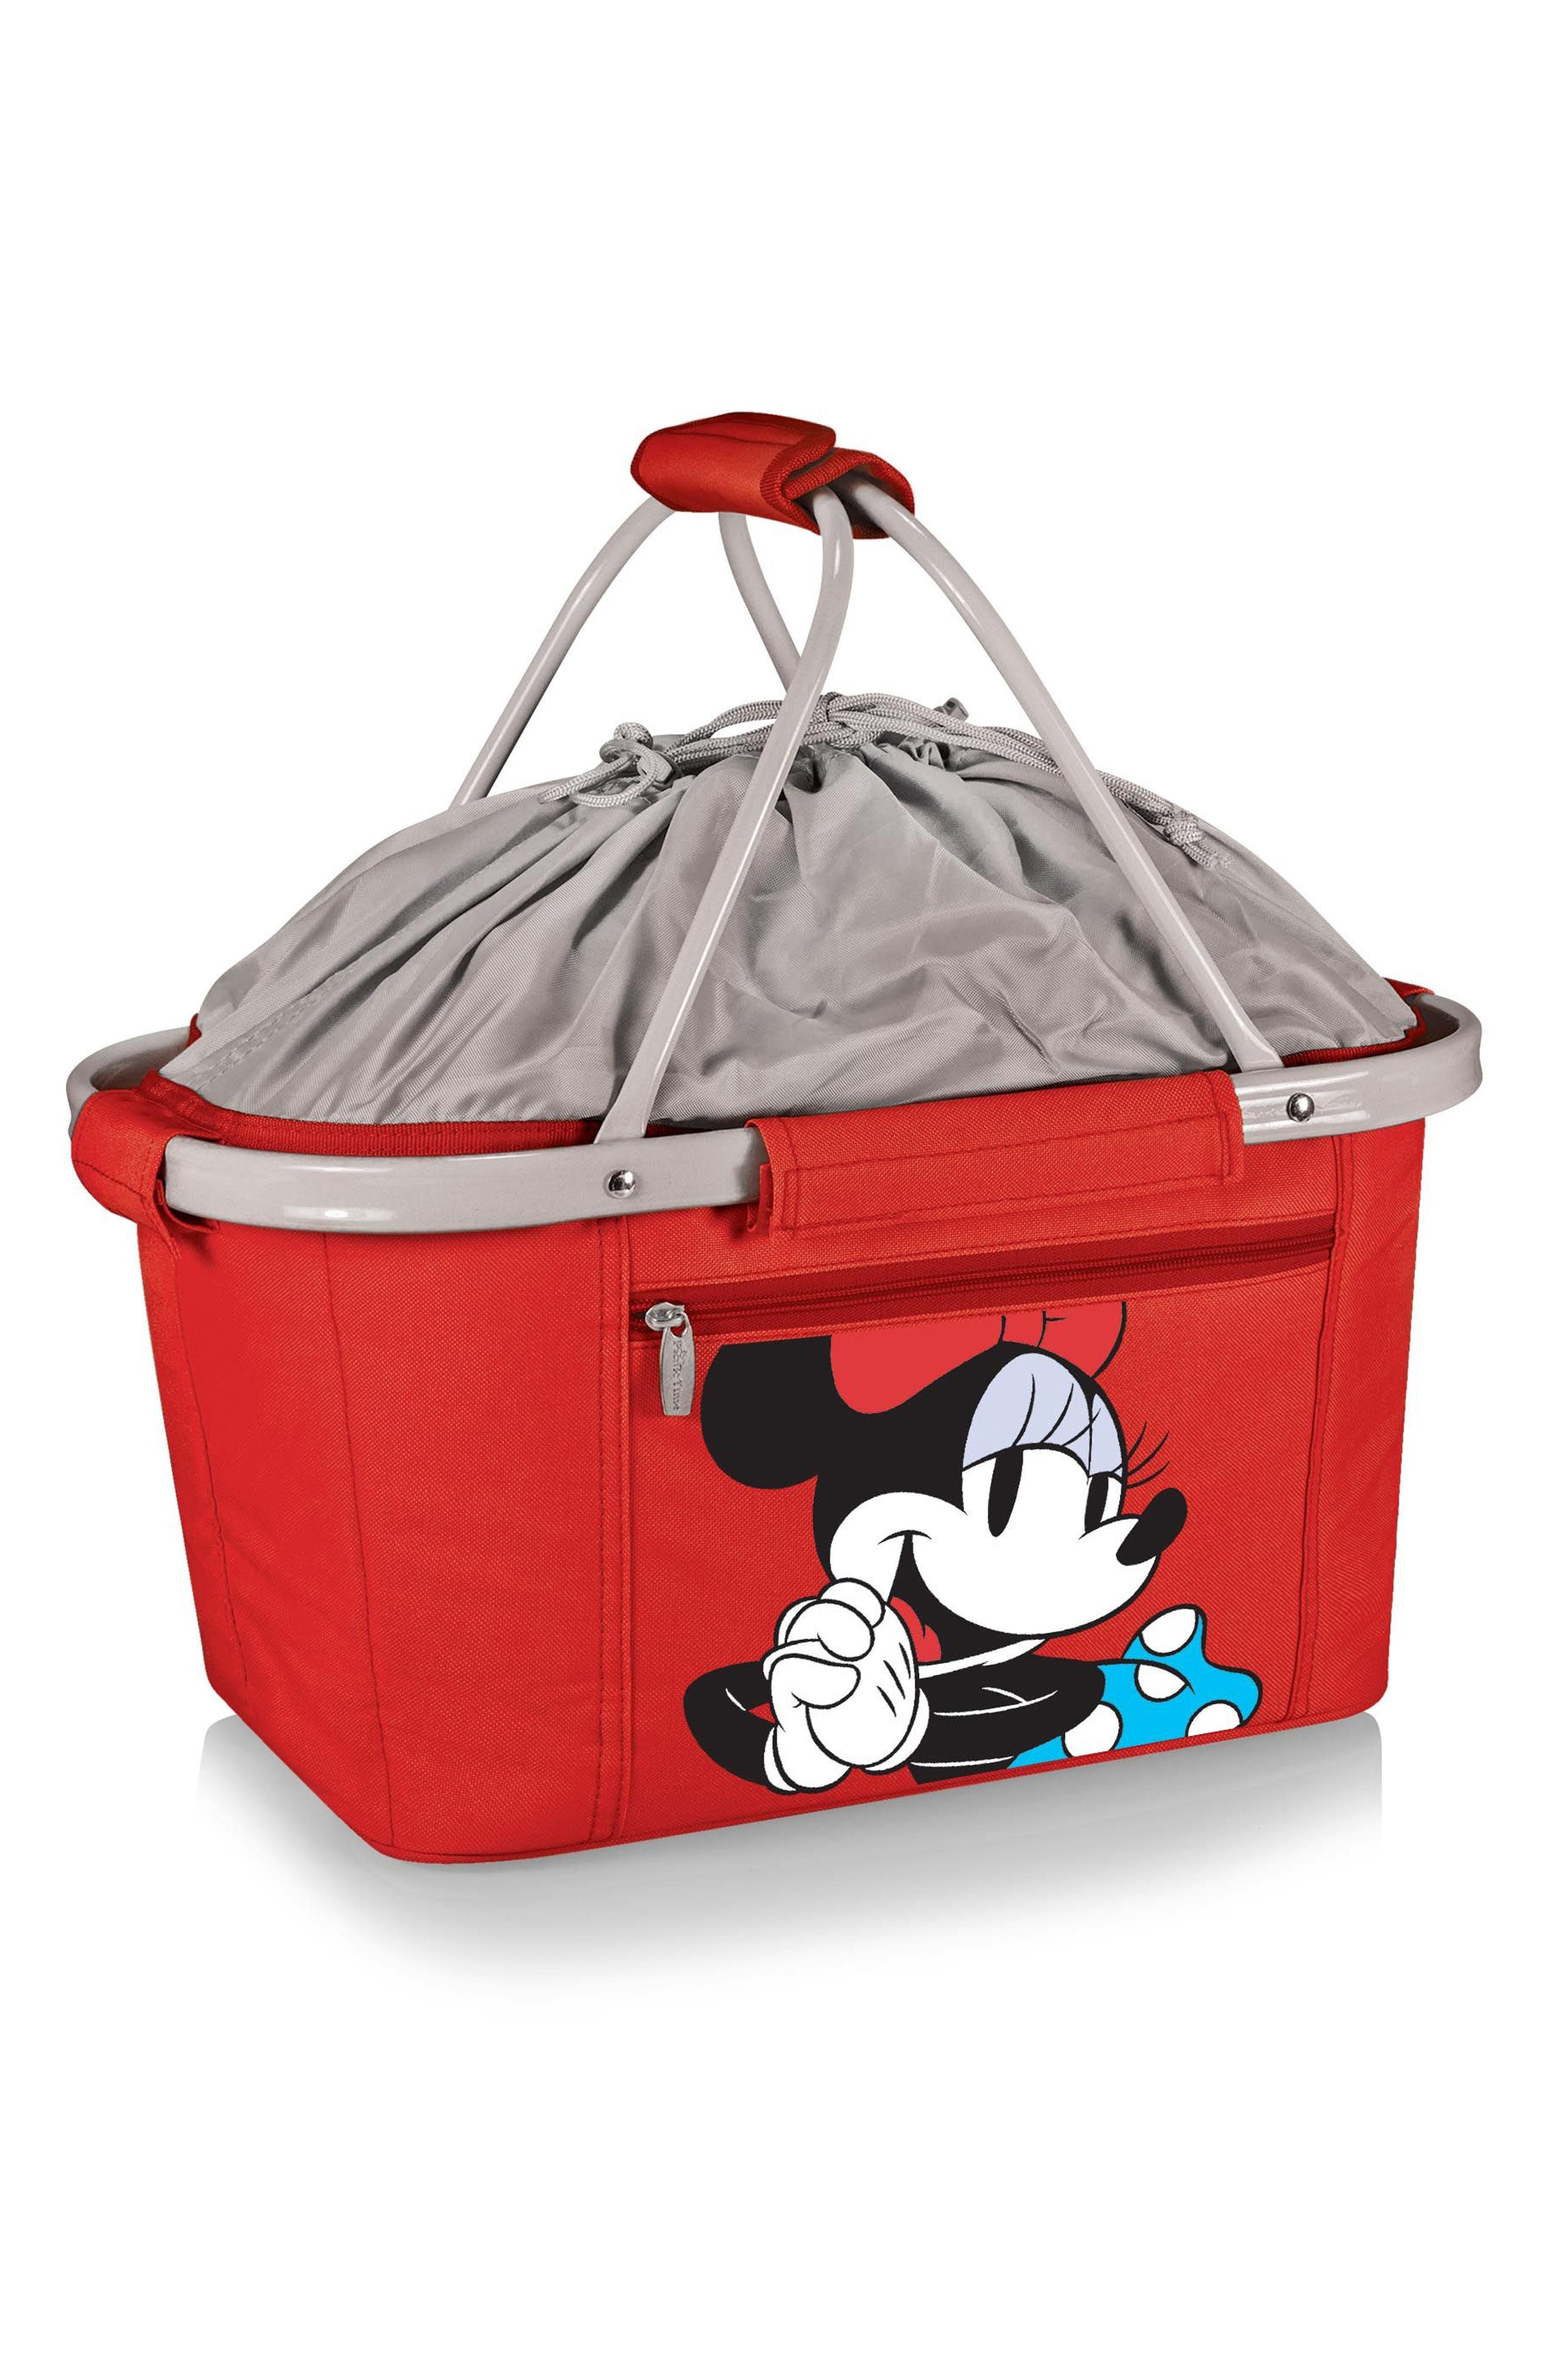 Picnic Time Metro - Disney Collapsible Insulated Basket